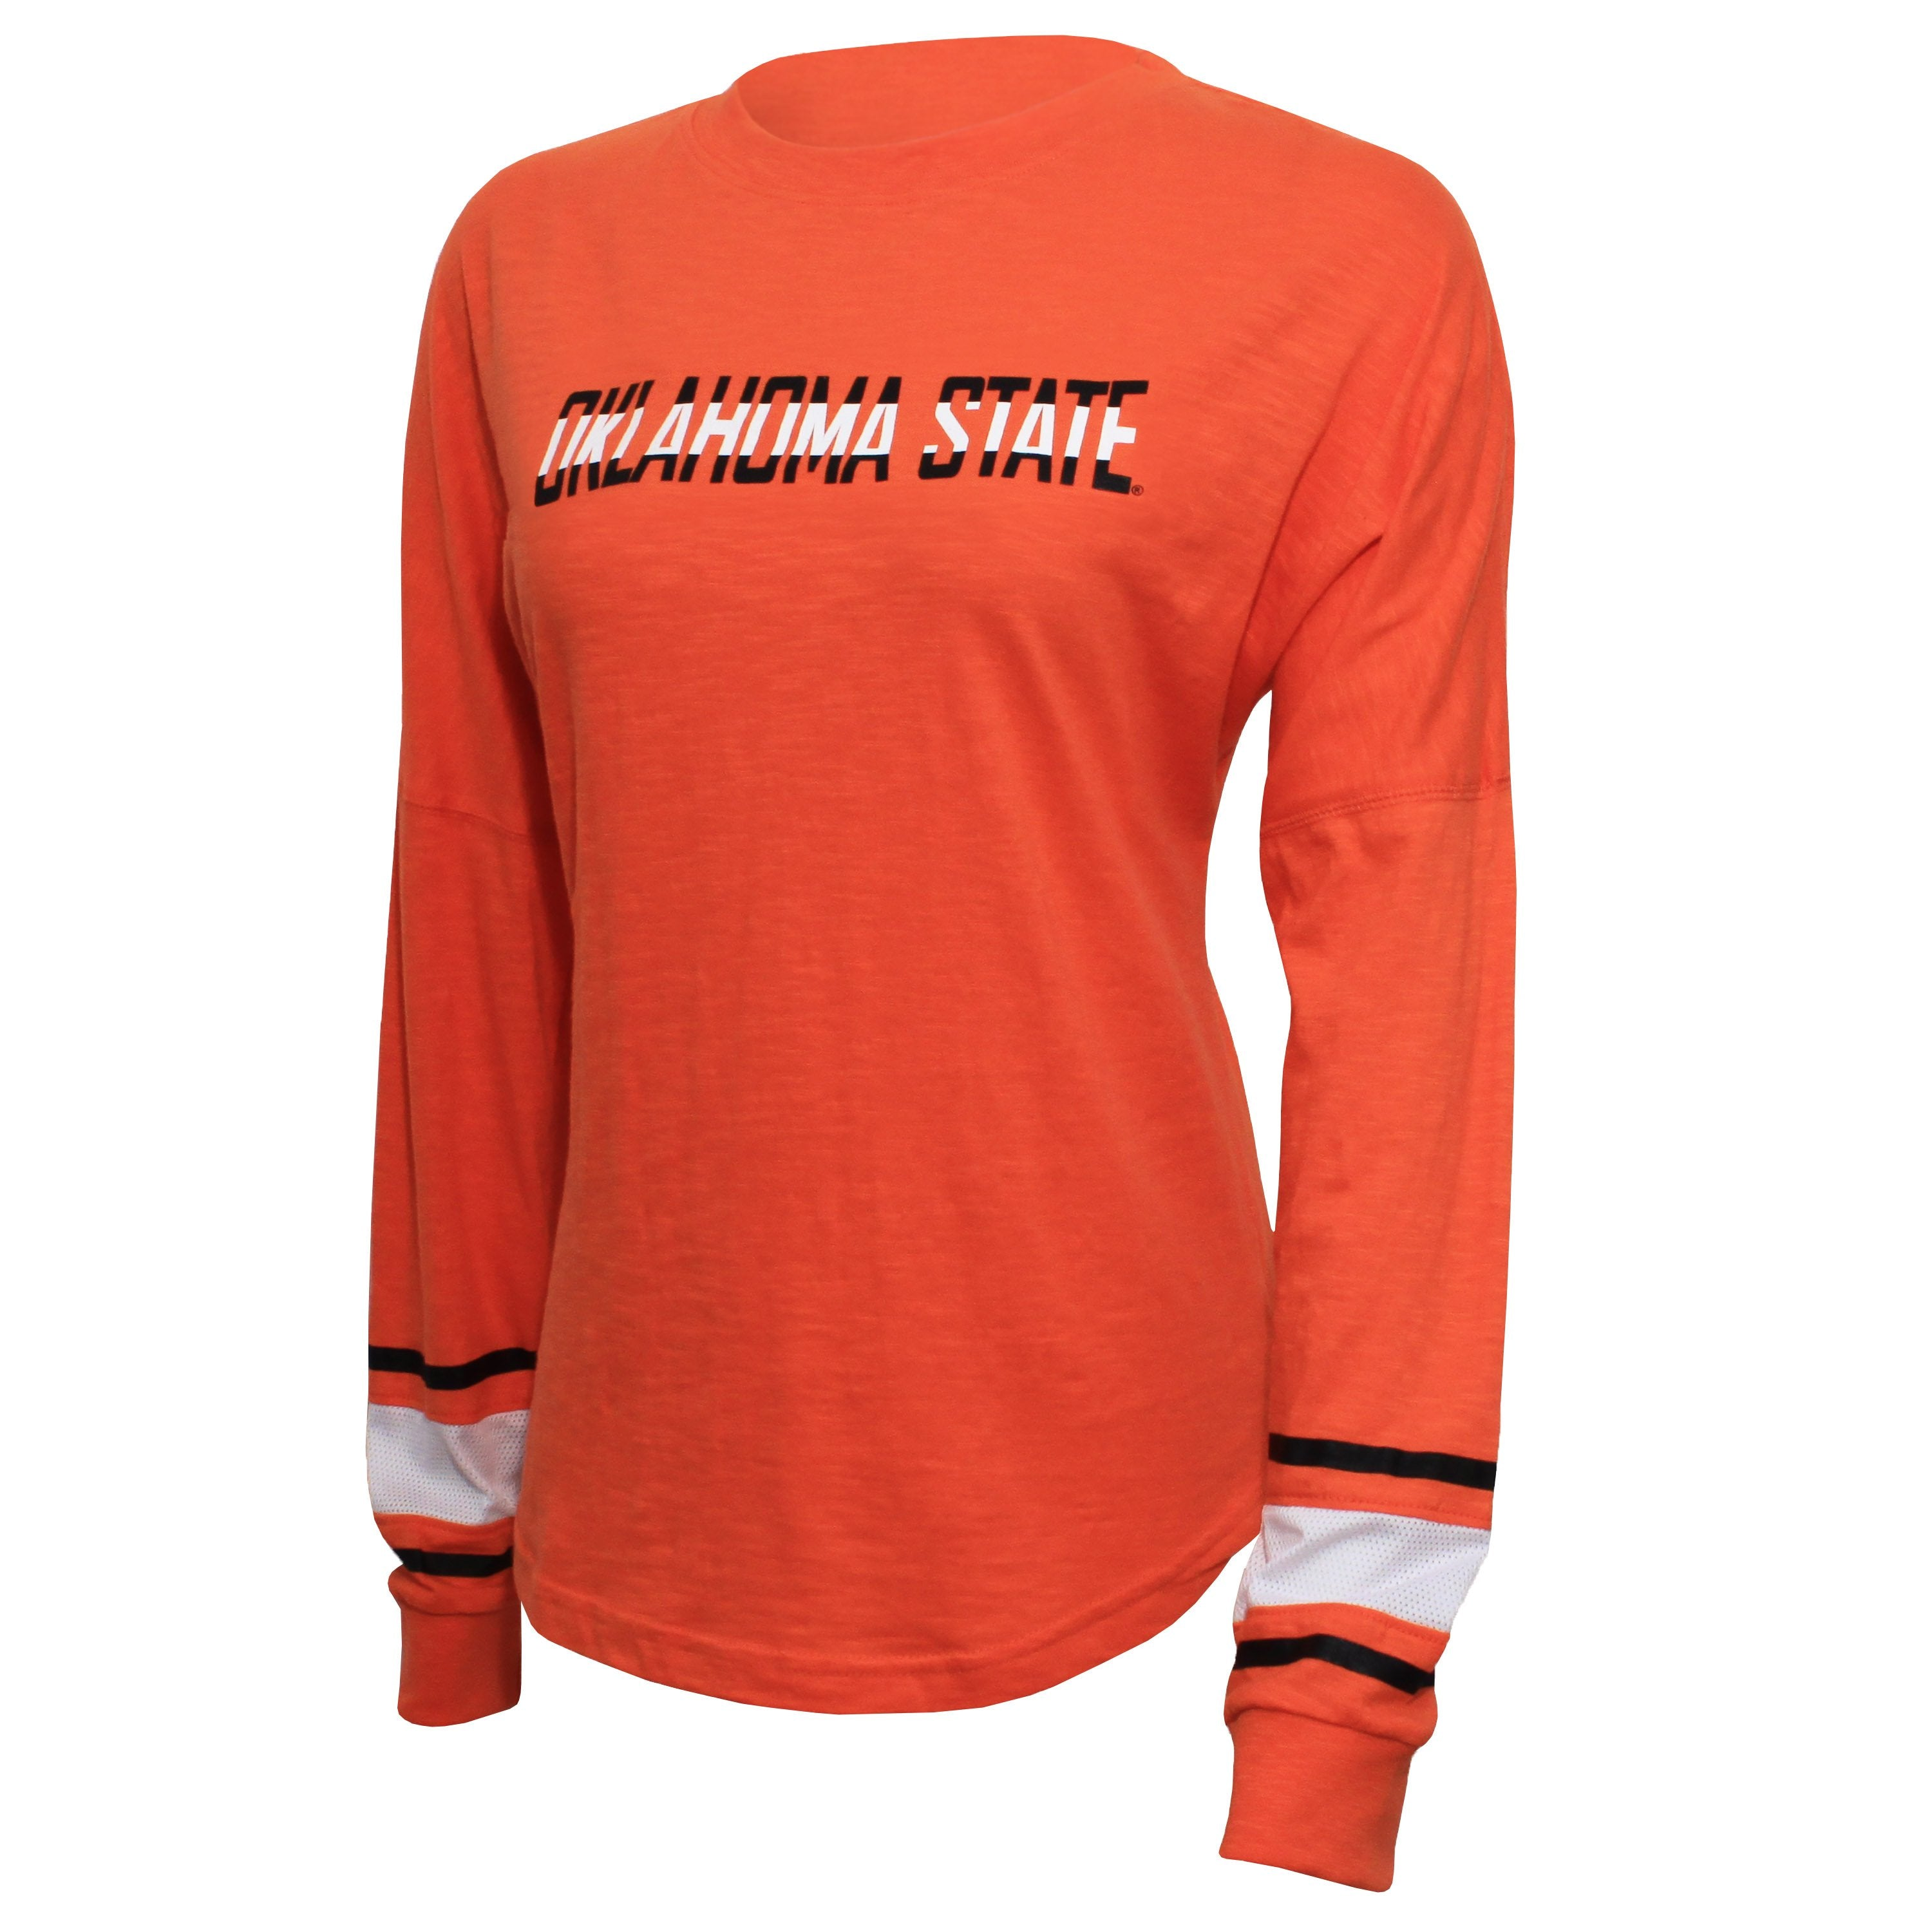 Campus Specialties Oklahoma State Women's Orange Striped Sleeve Top